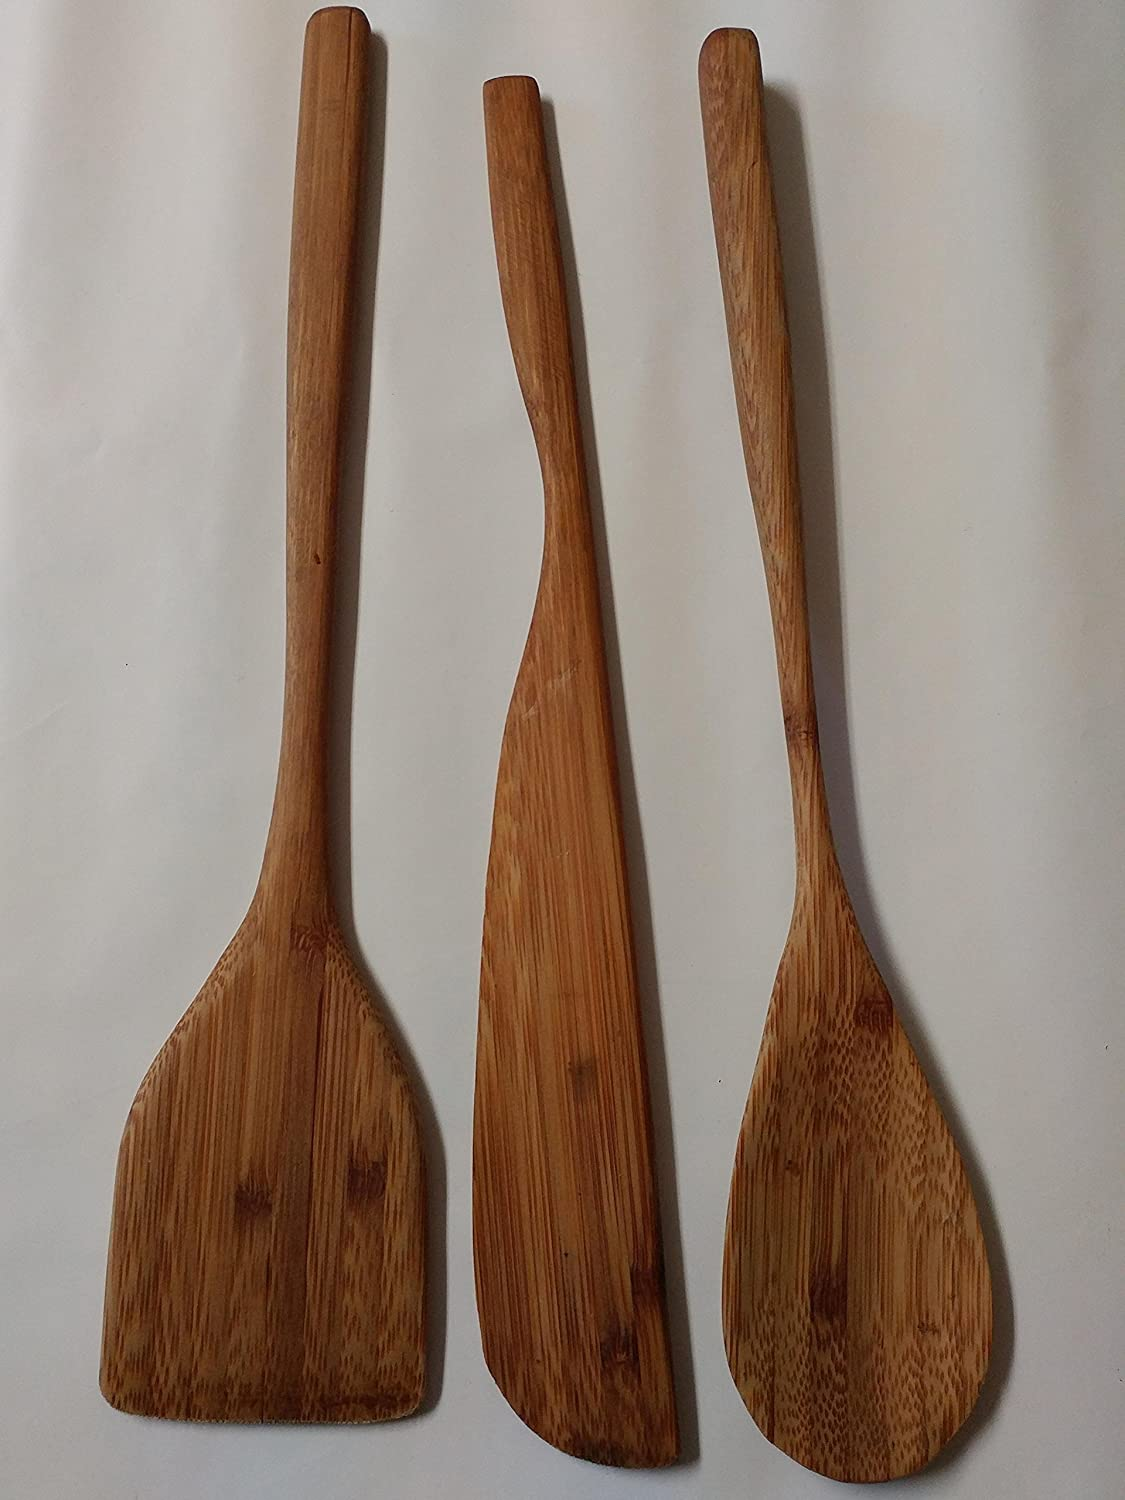 Handcarved Bamboo Utensils Set of 3